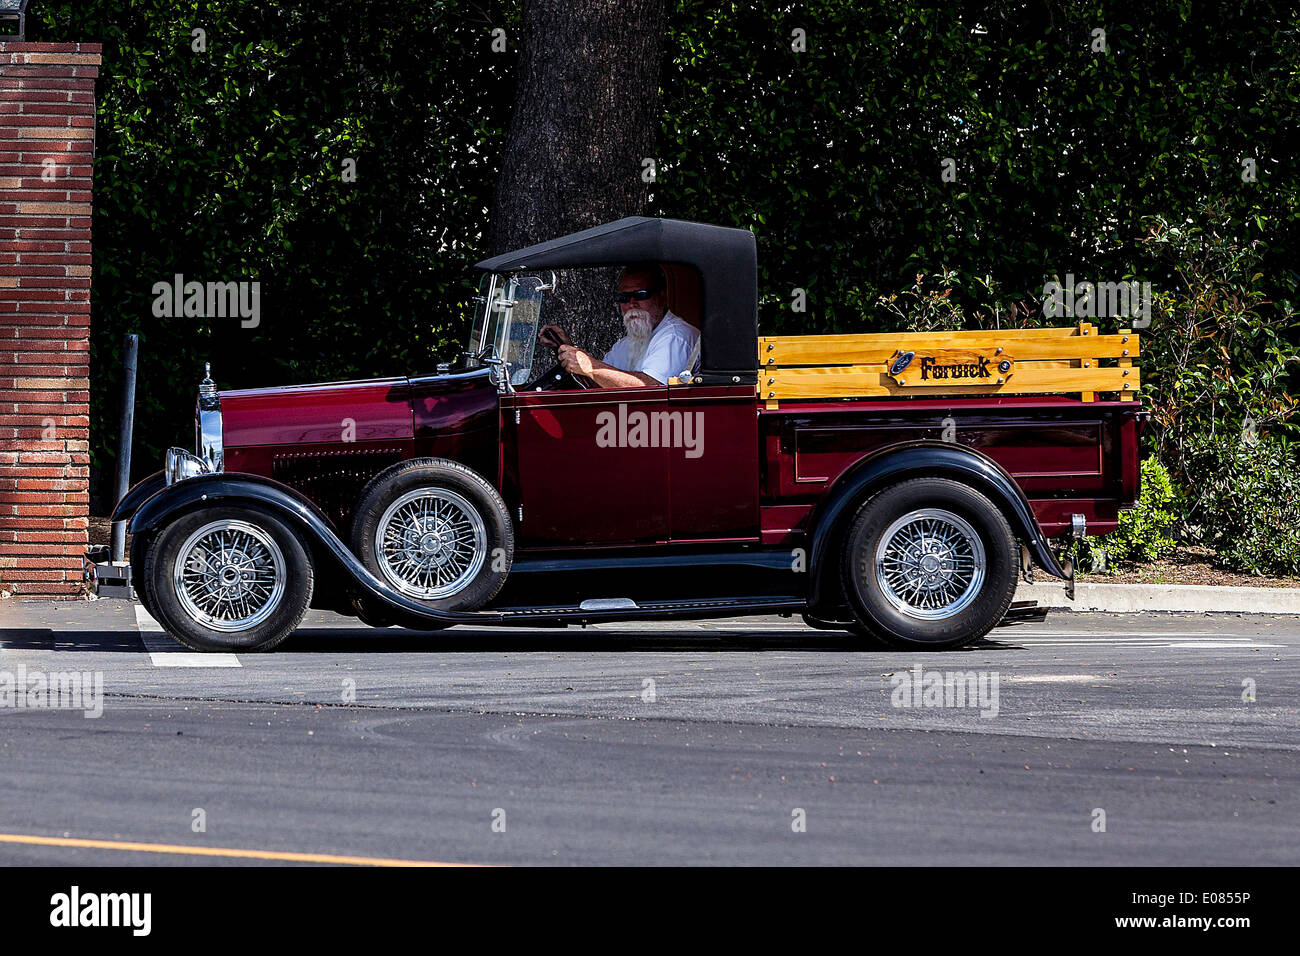 A 1932 Ford pickup truck Hot Rod Stock Photo, Royalty Free Image ...